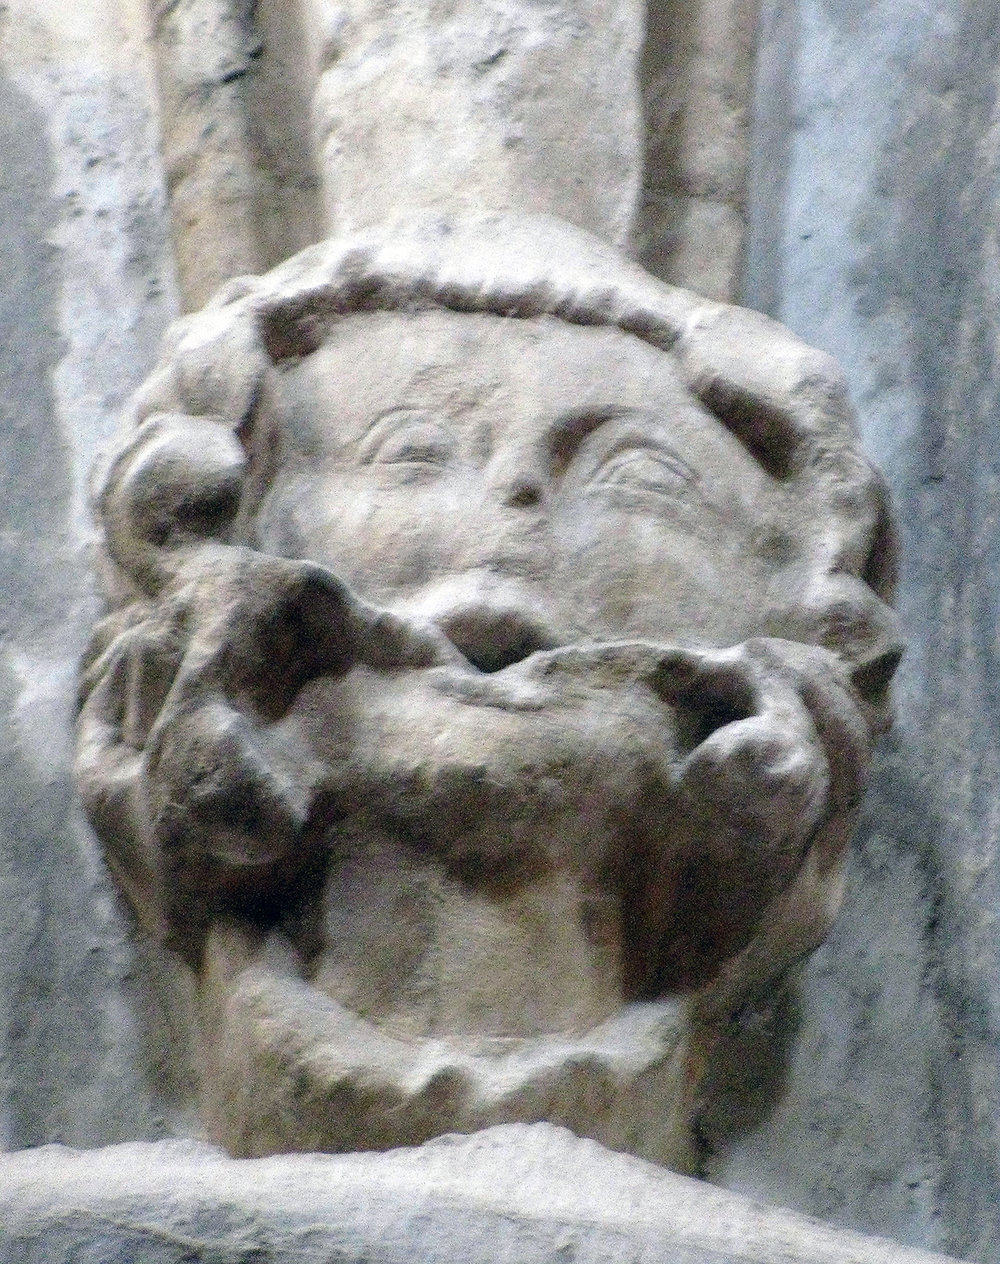 IMAGE EIGHT–Green Man in an Irish Cathedral explained as a pagan deity